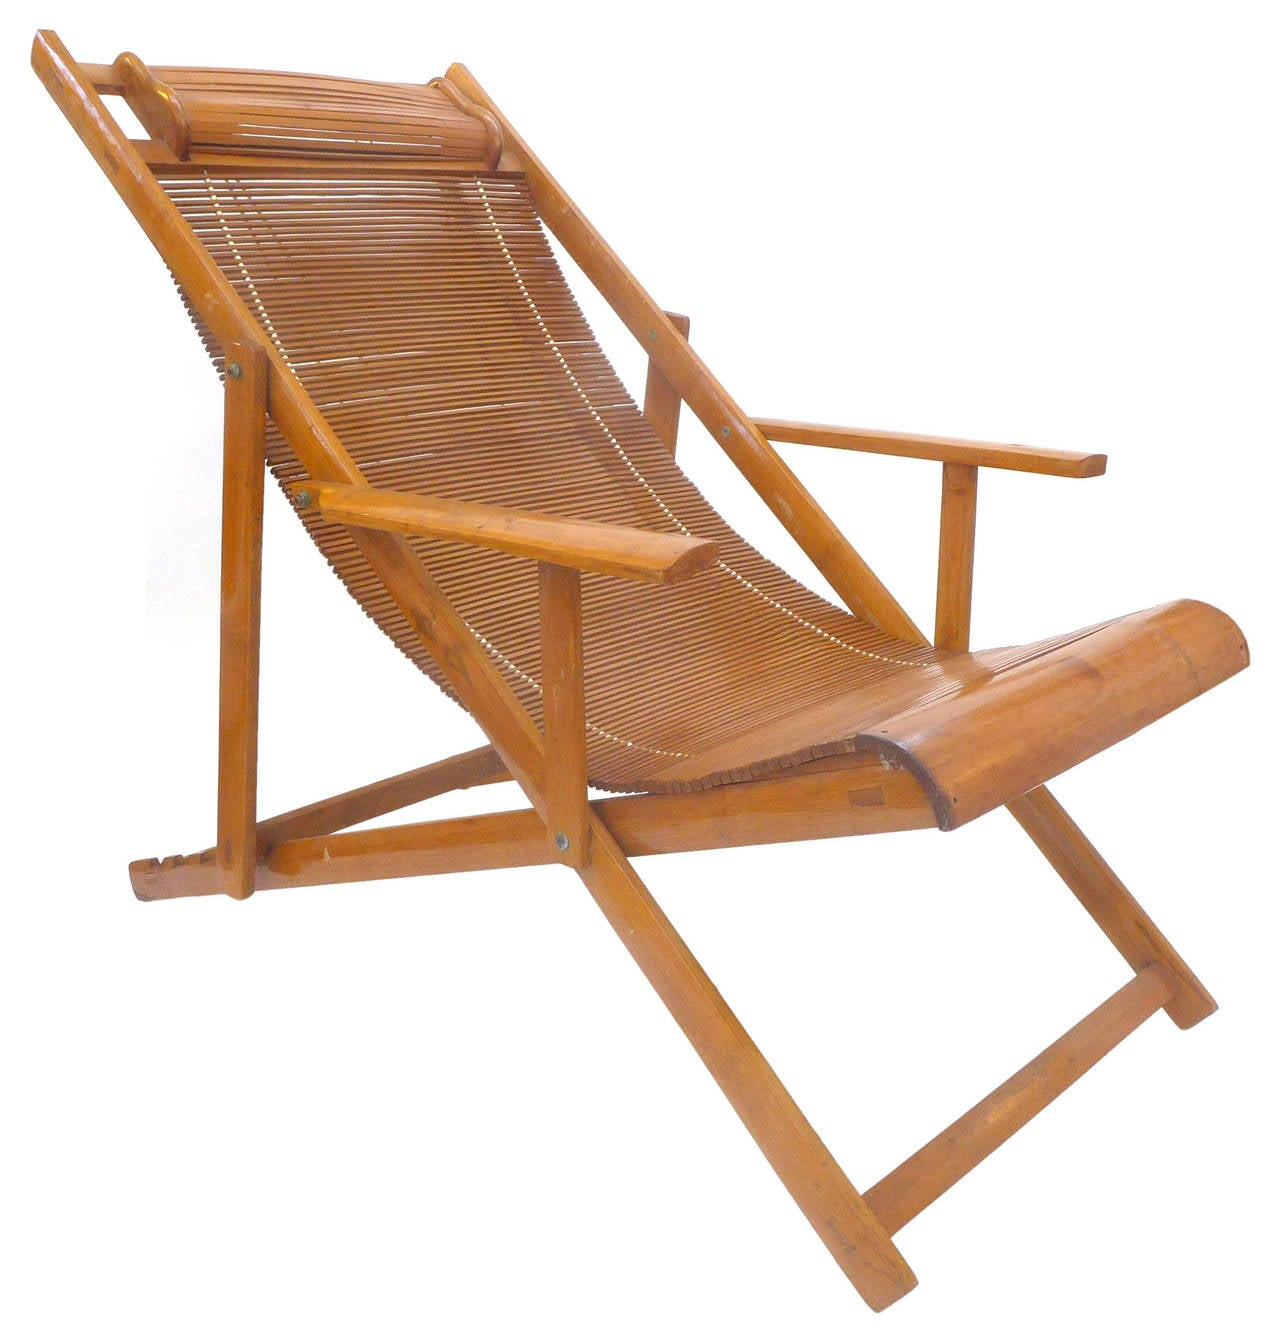 Japanese Chair Japanese Folding Bamboo Lounge At 1stdibs